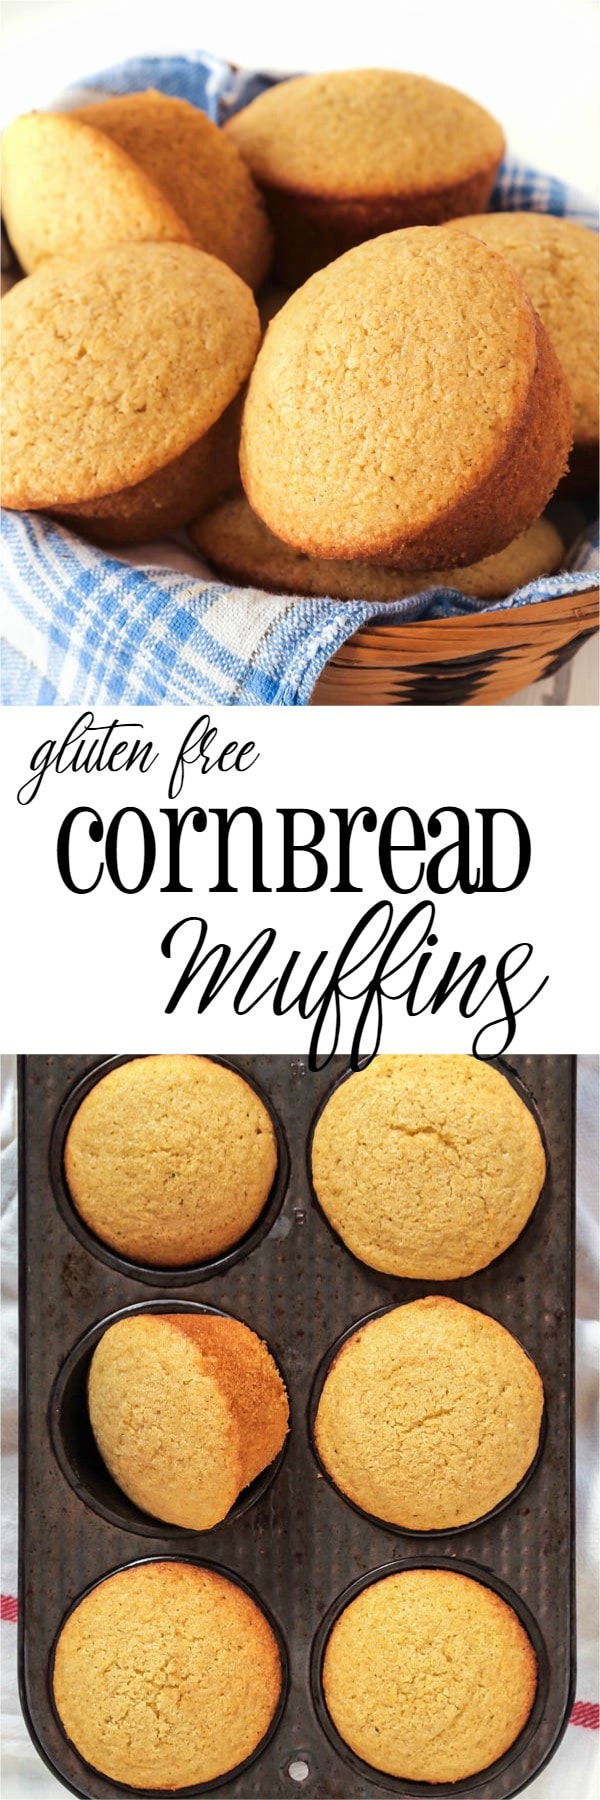 These gluten free Buttermilk Cornbread Muffins were not only the best gluten free ones I've ever had, but they beat anything that I made before going gluten free as well!